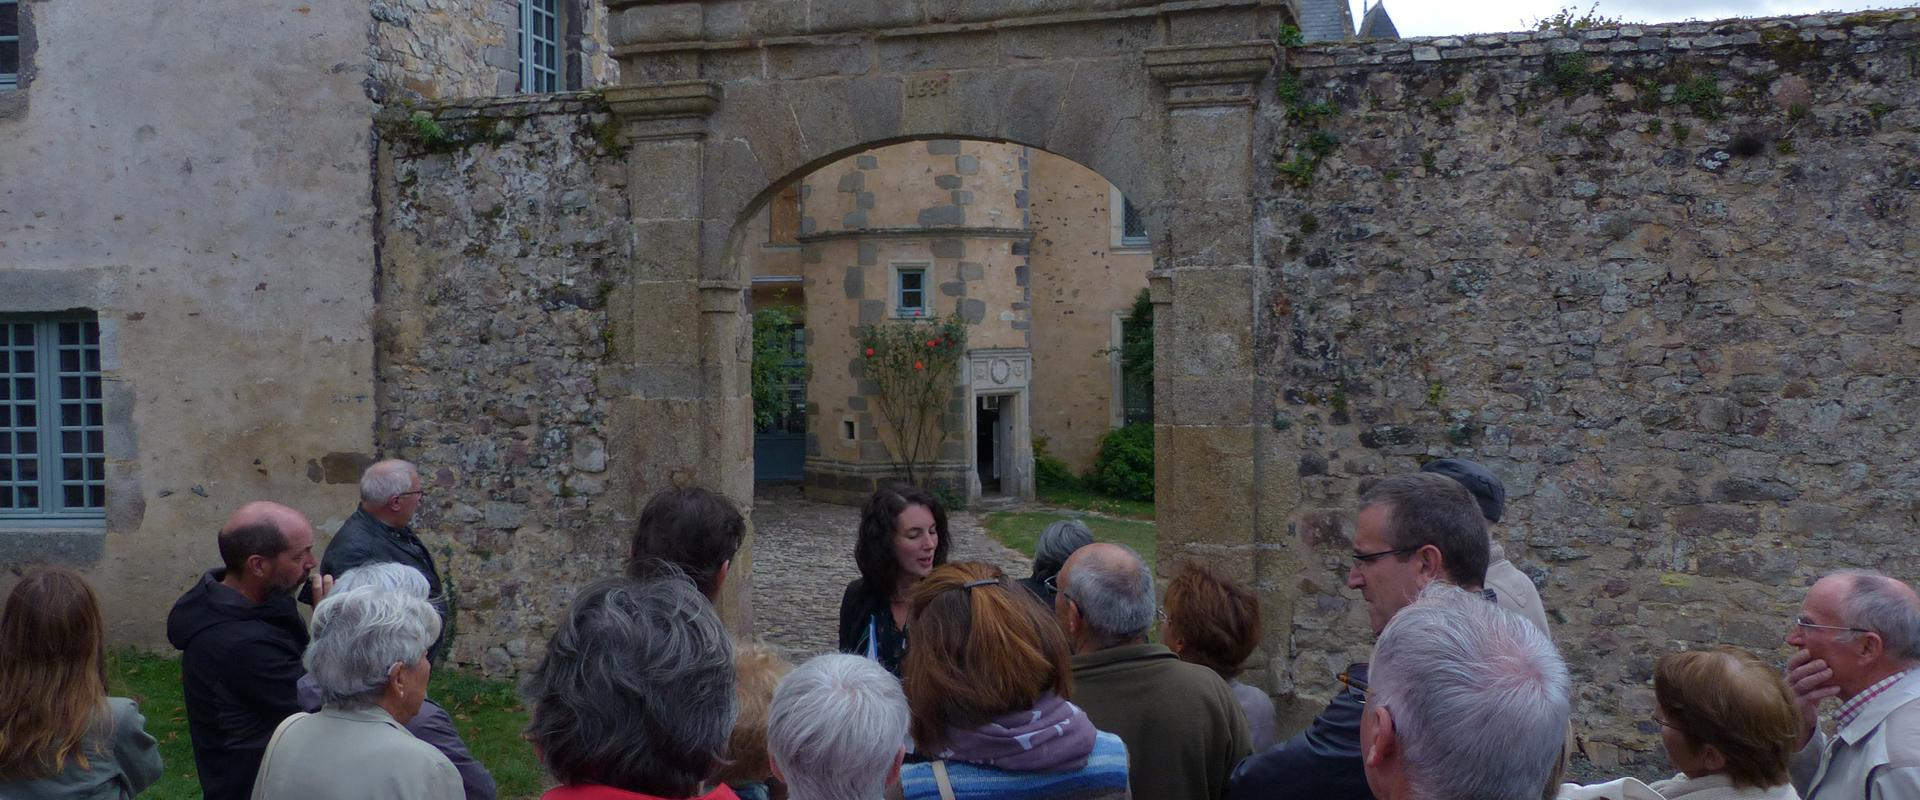 Visites-excursions-groupes